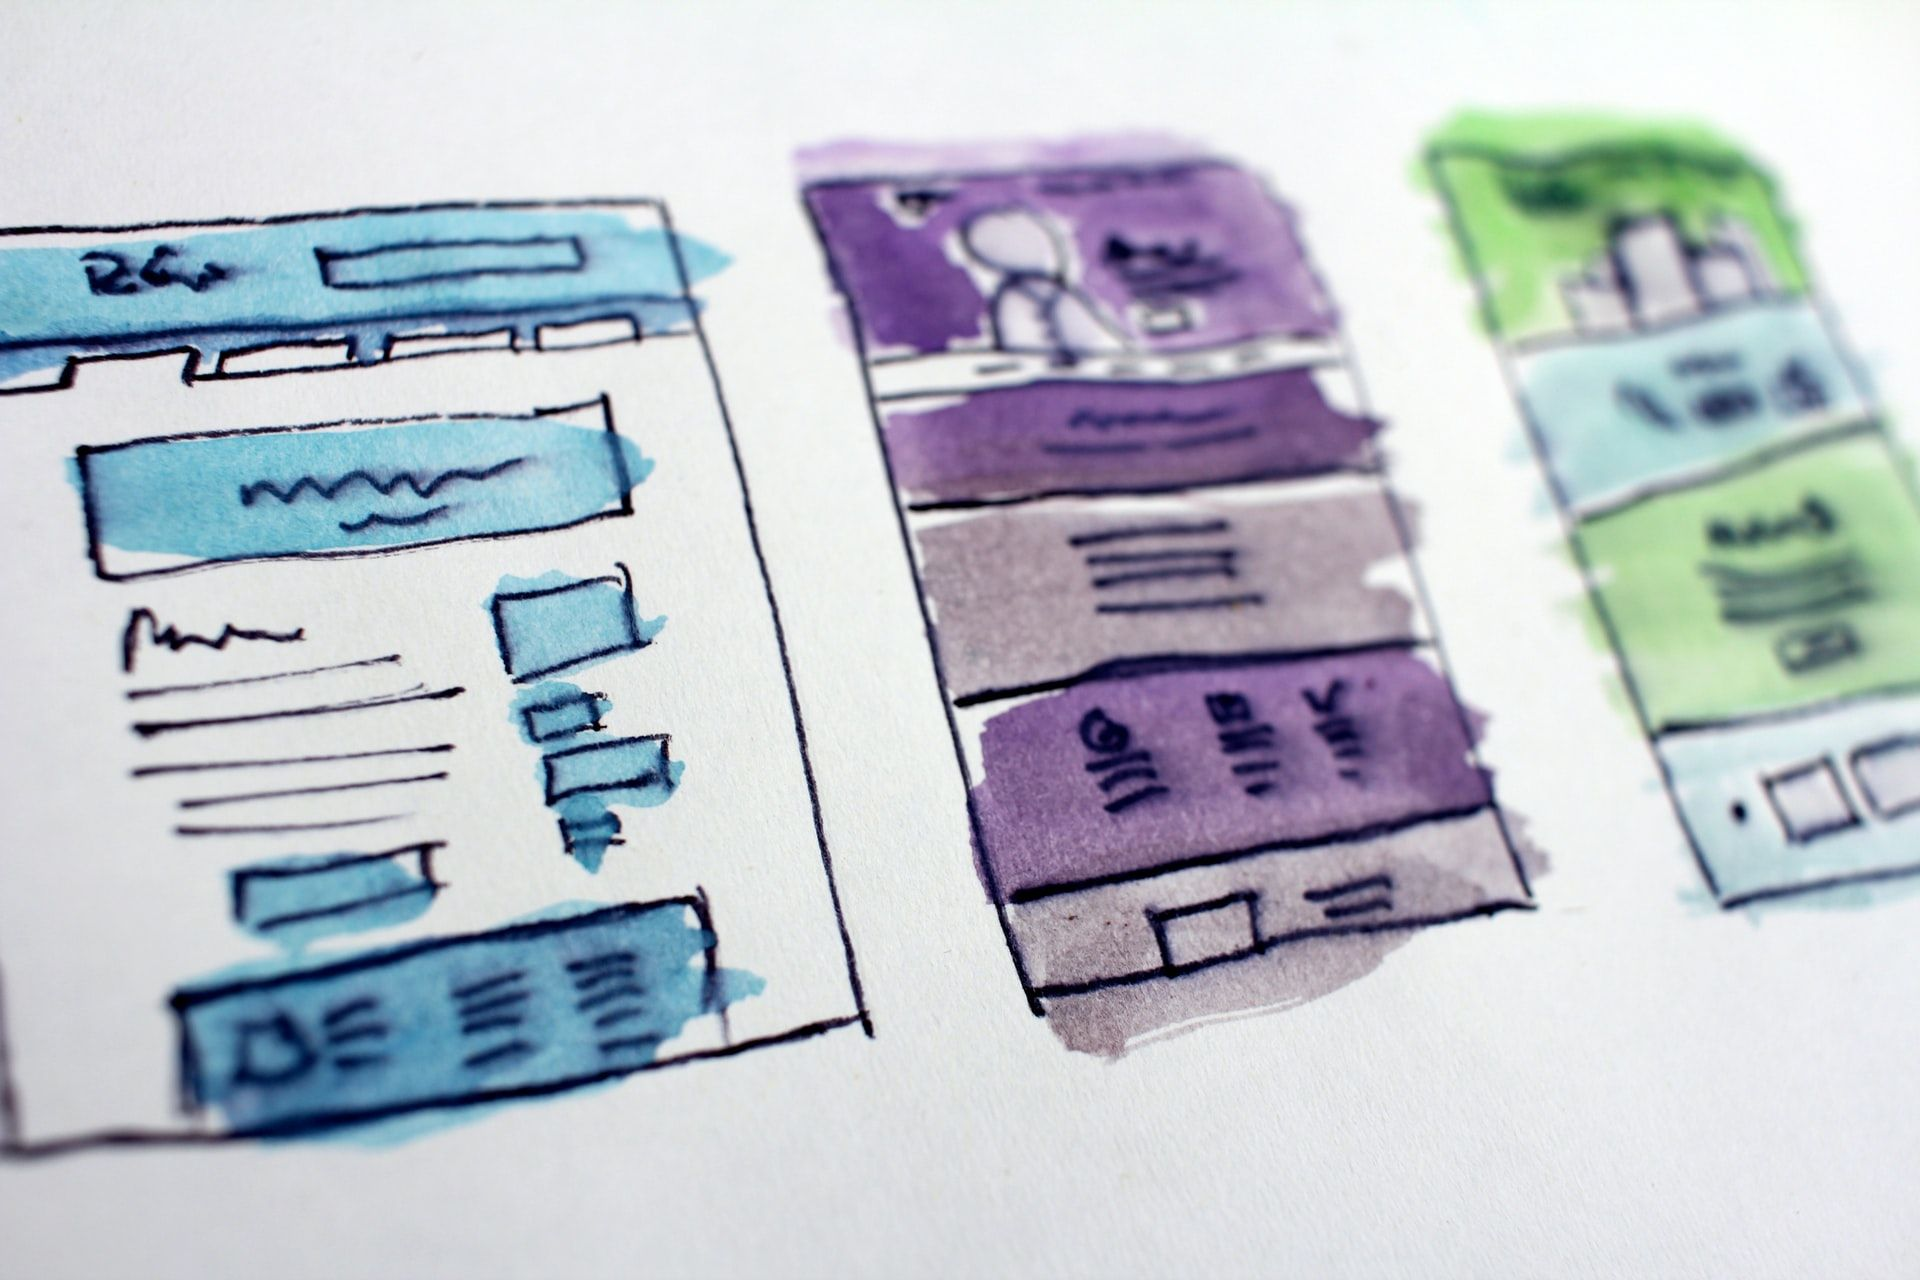 Sketched and painted app screens in three different aesthetics on white paper.